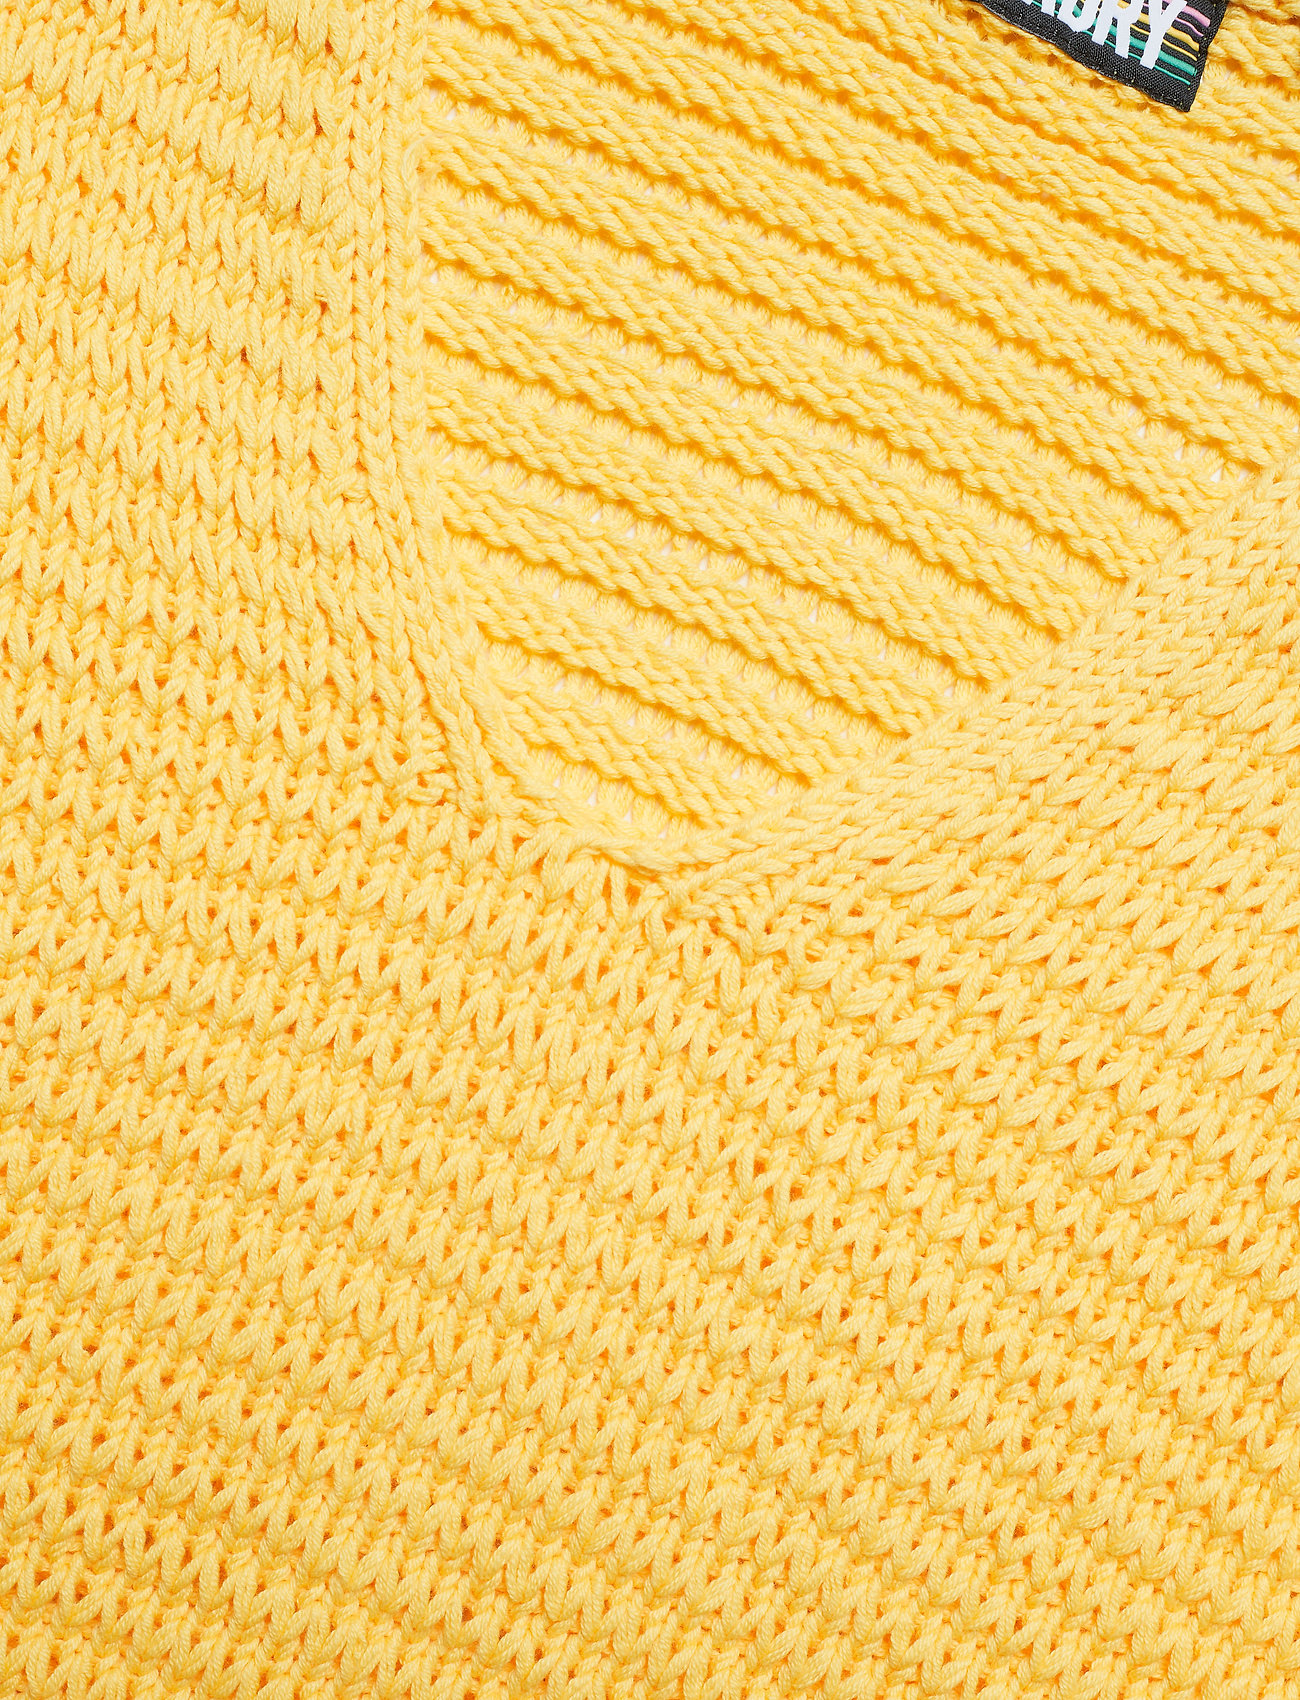 Superdry ELOISE TEXTURED OPEN KNIT - Dzianina SUNSHINE YELLOW - Kobiety Odzież.